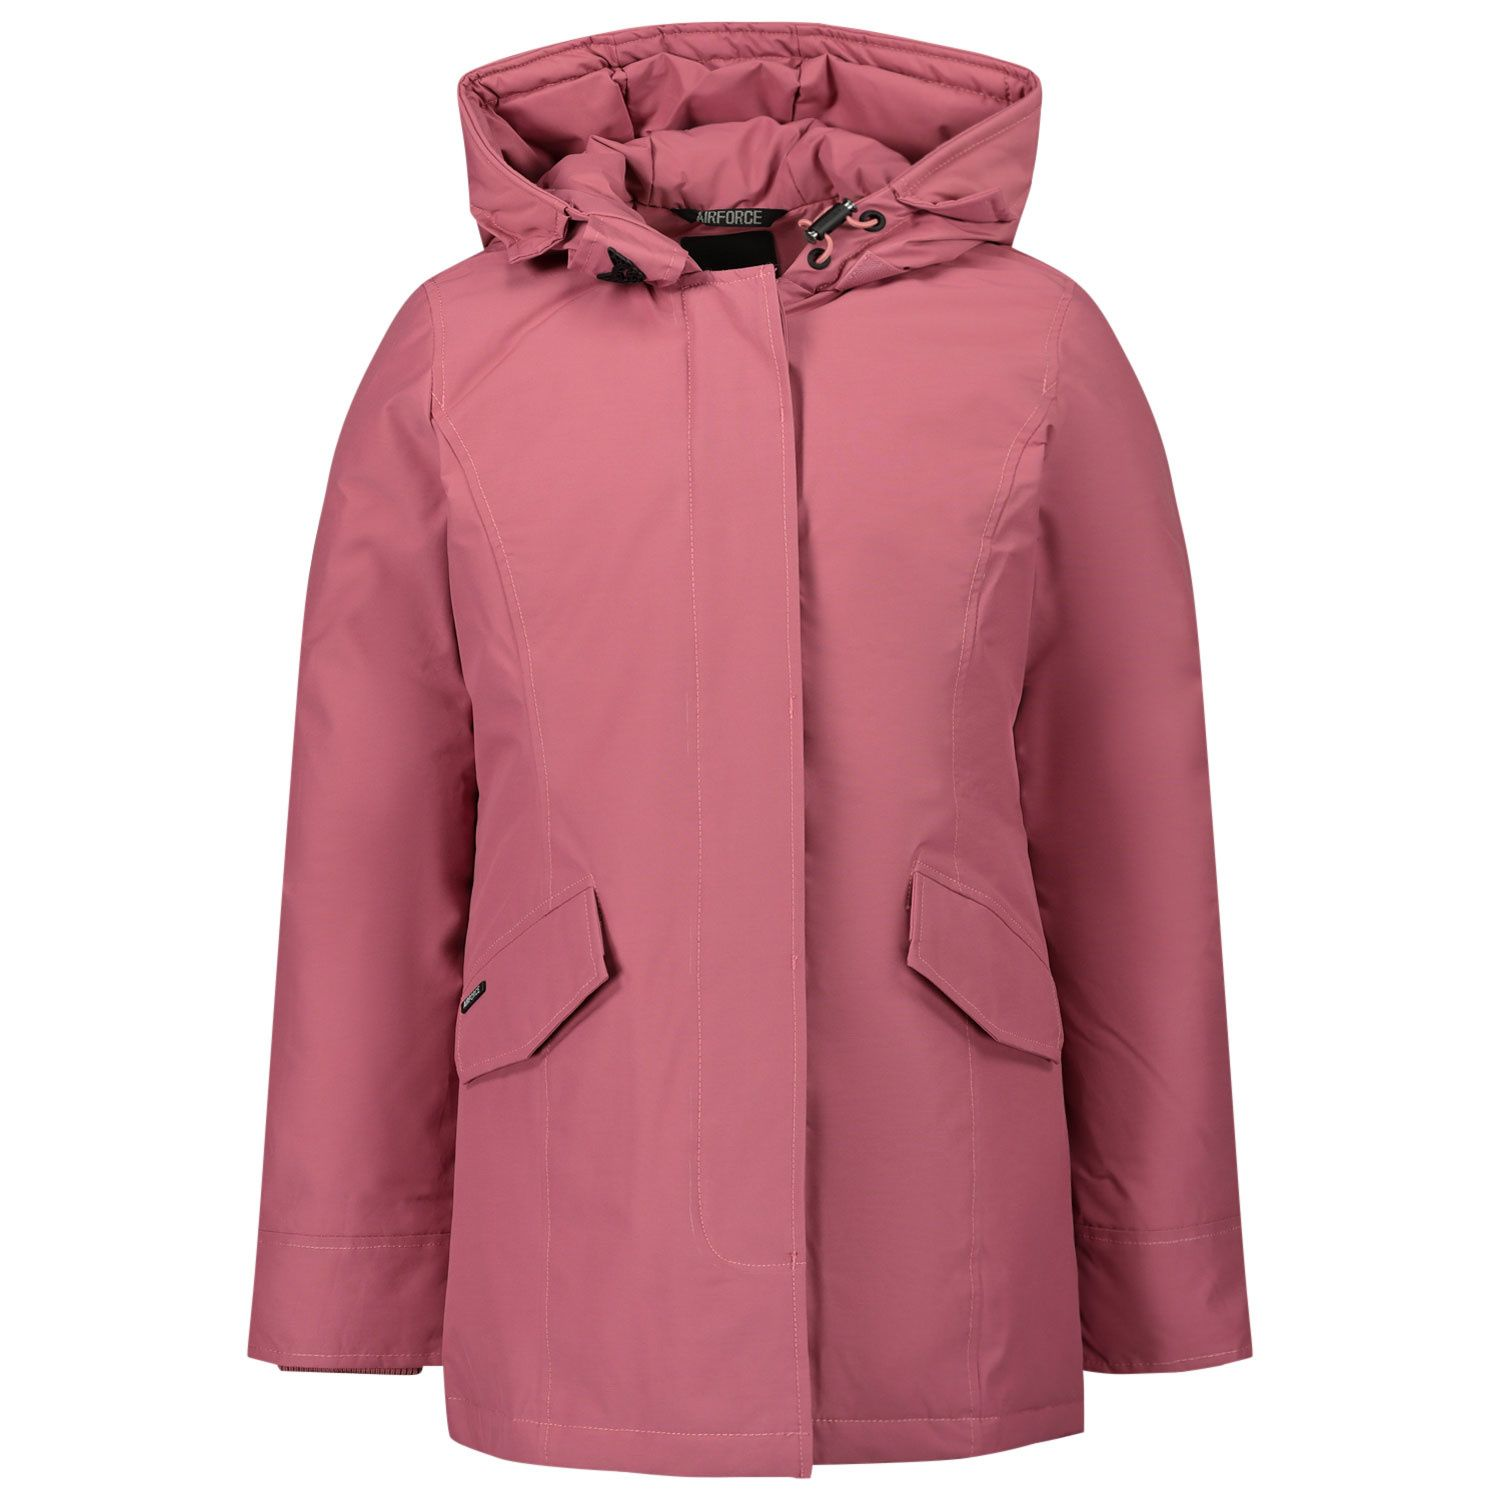 Picture of Airforce HRG0425 kids jacket raspberry